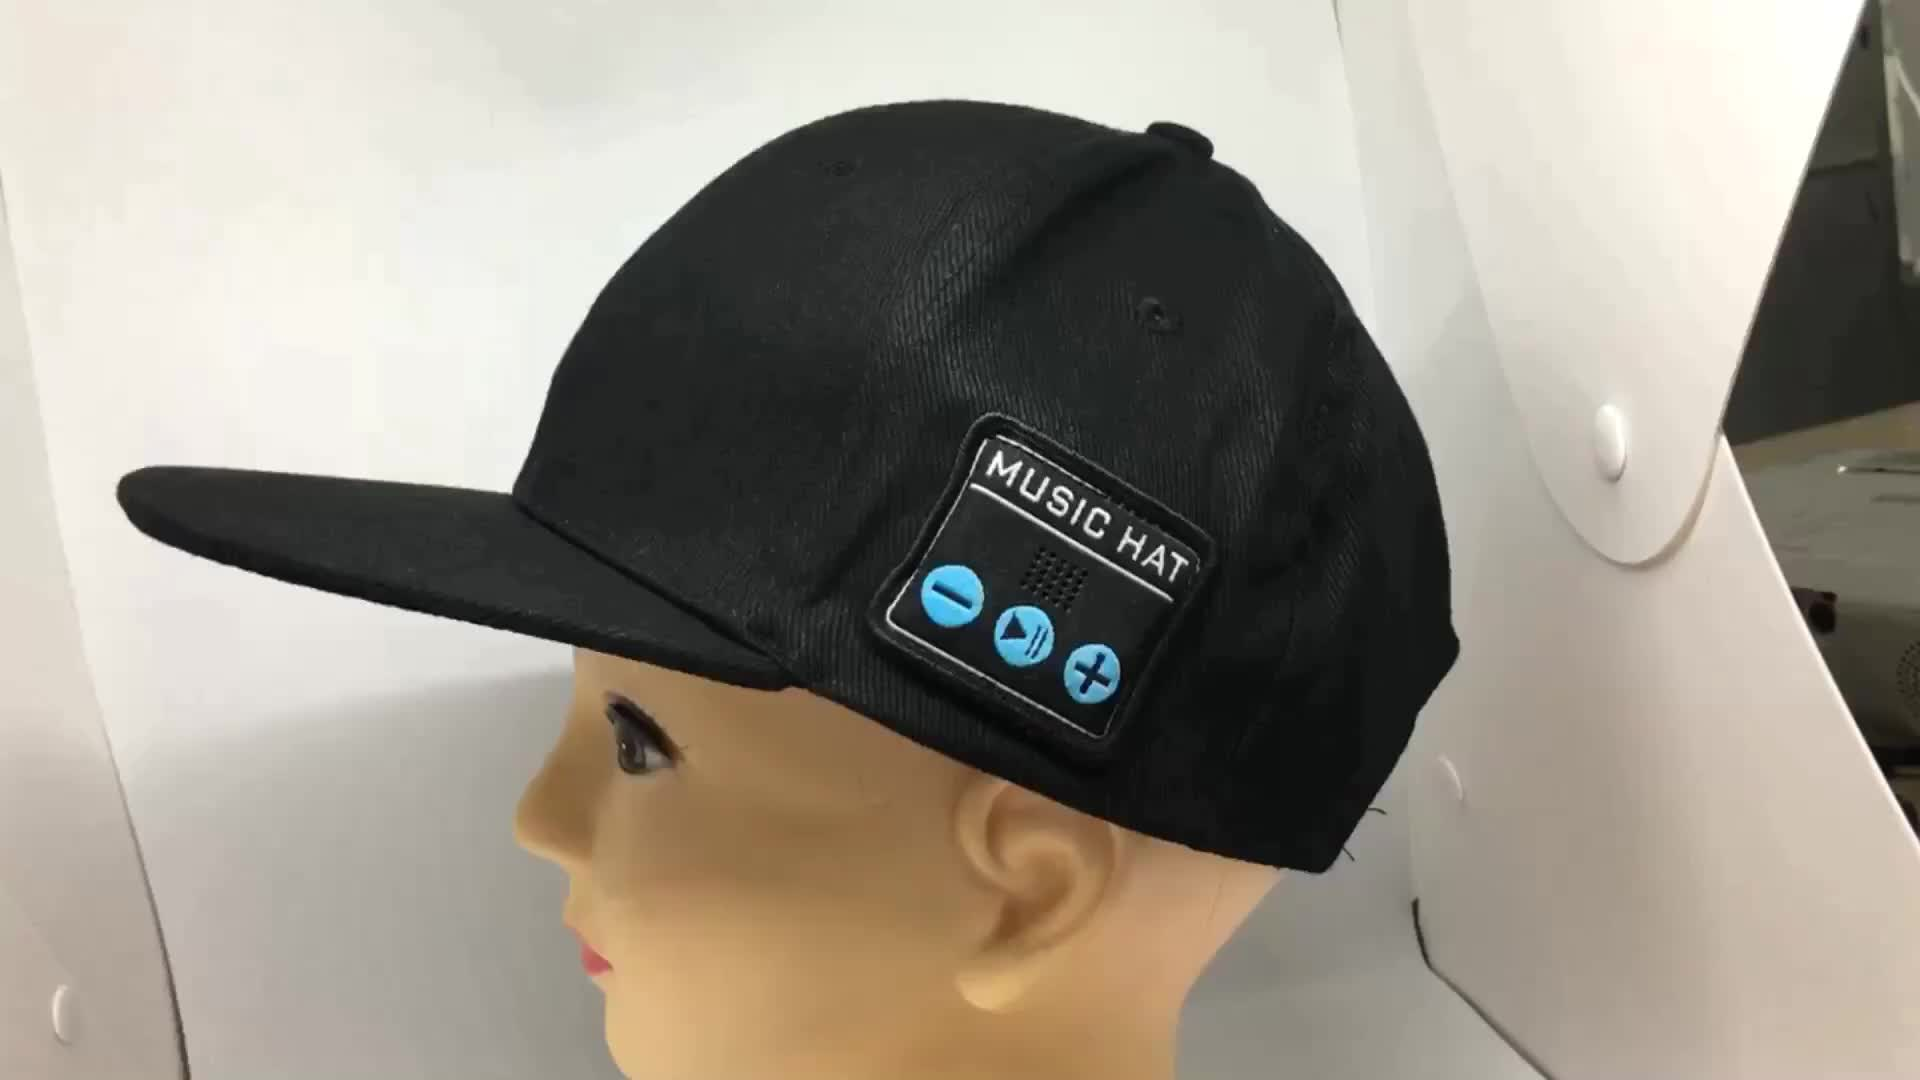 Wholesale Gorros Snap-back outdoor sport cap music and phone function hat  with Blue tooth e2880249493